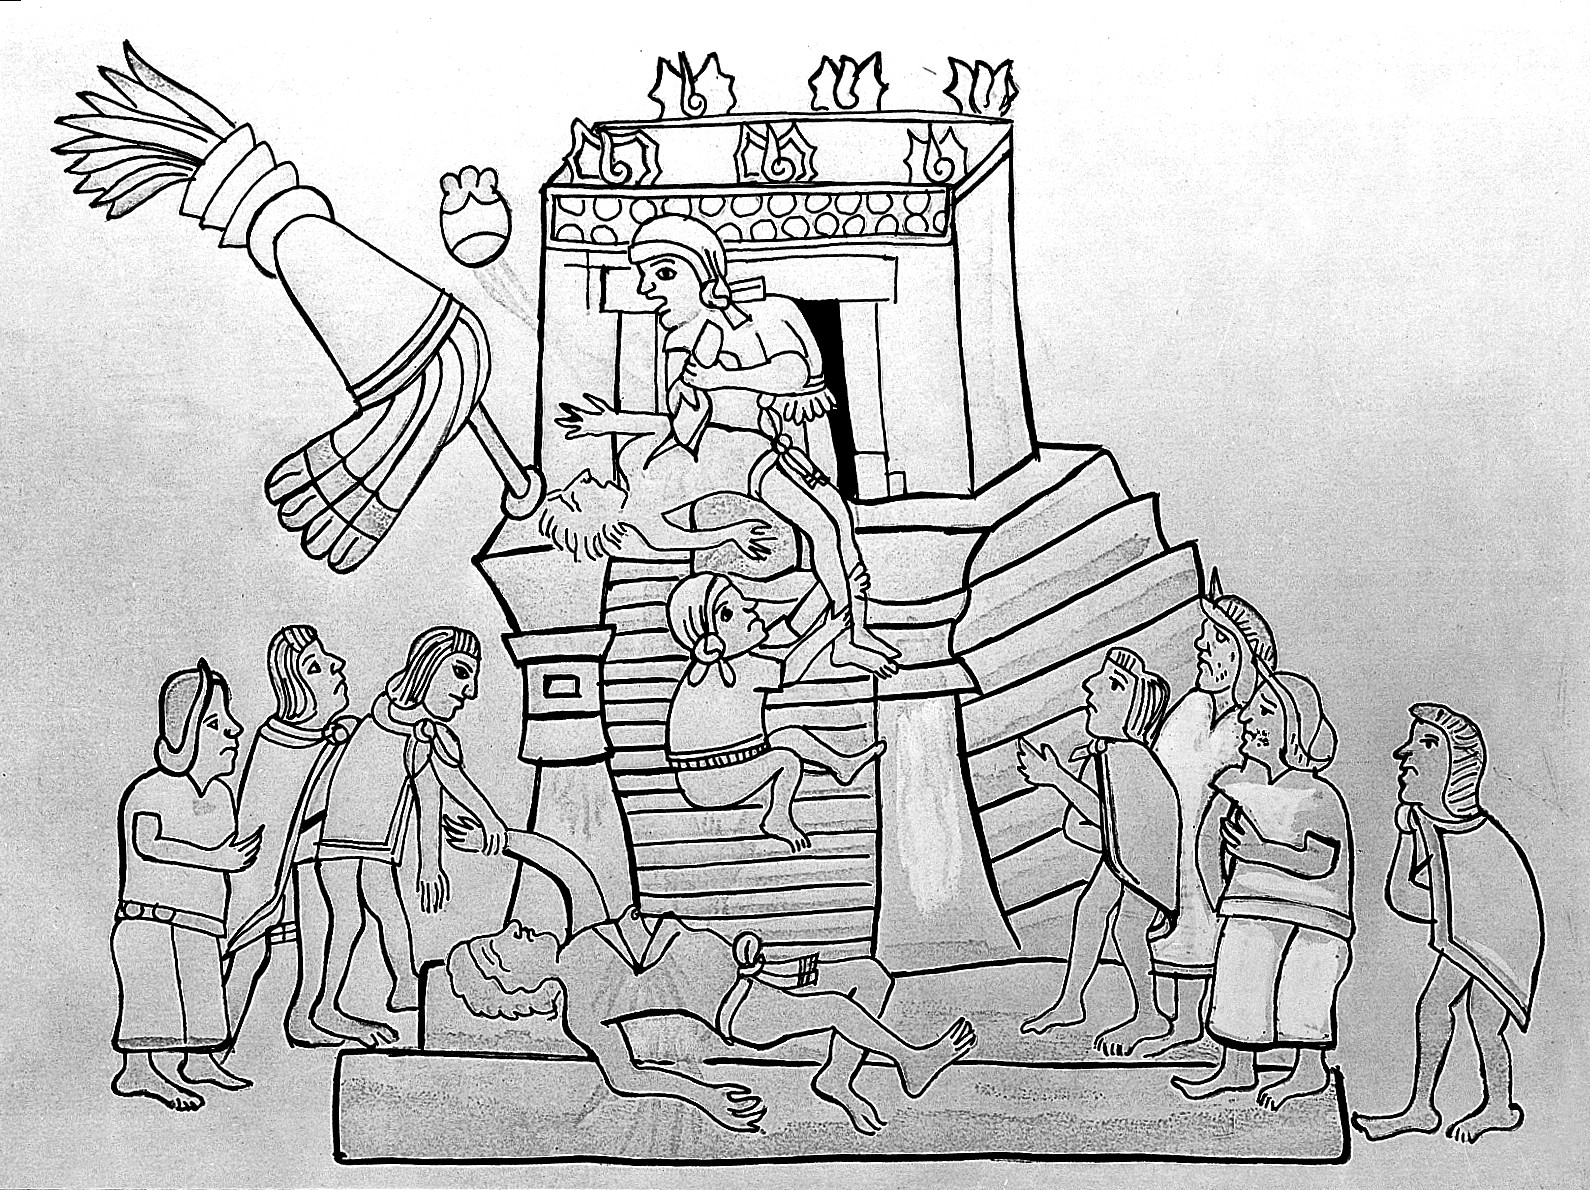 aztec human sacrifice a detached Essays - largest database of quality sample essays and research papers on compare aztecs and spanish aztec human sacrifice - a detached view.